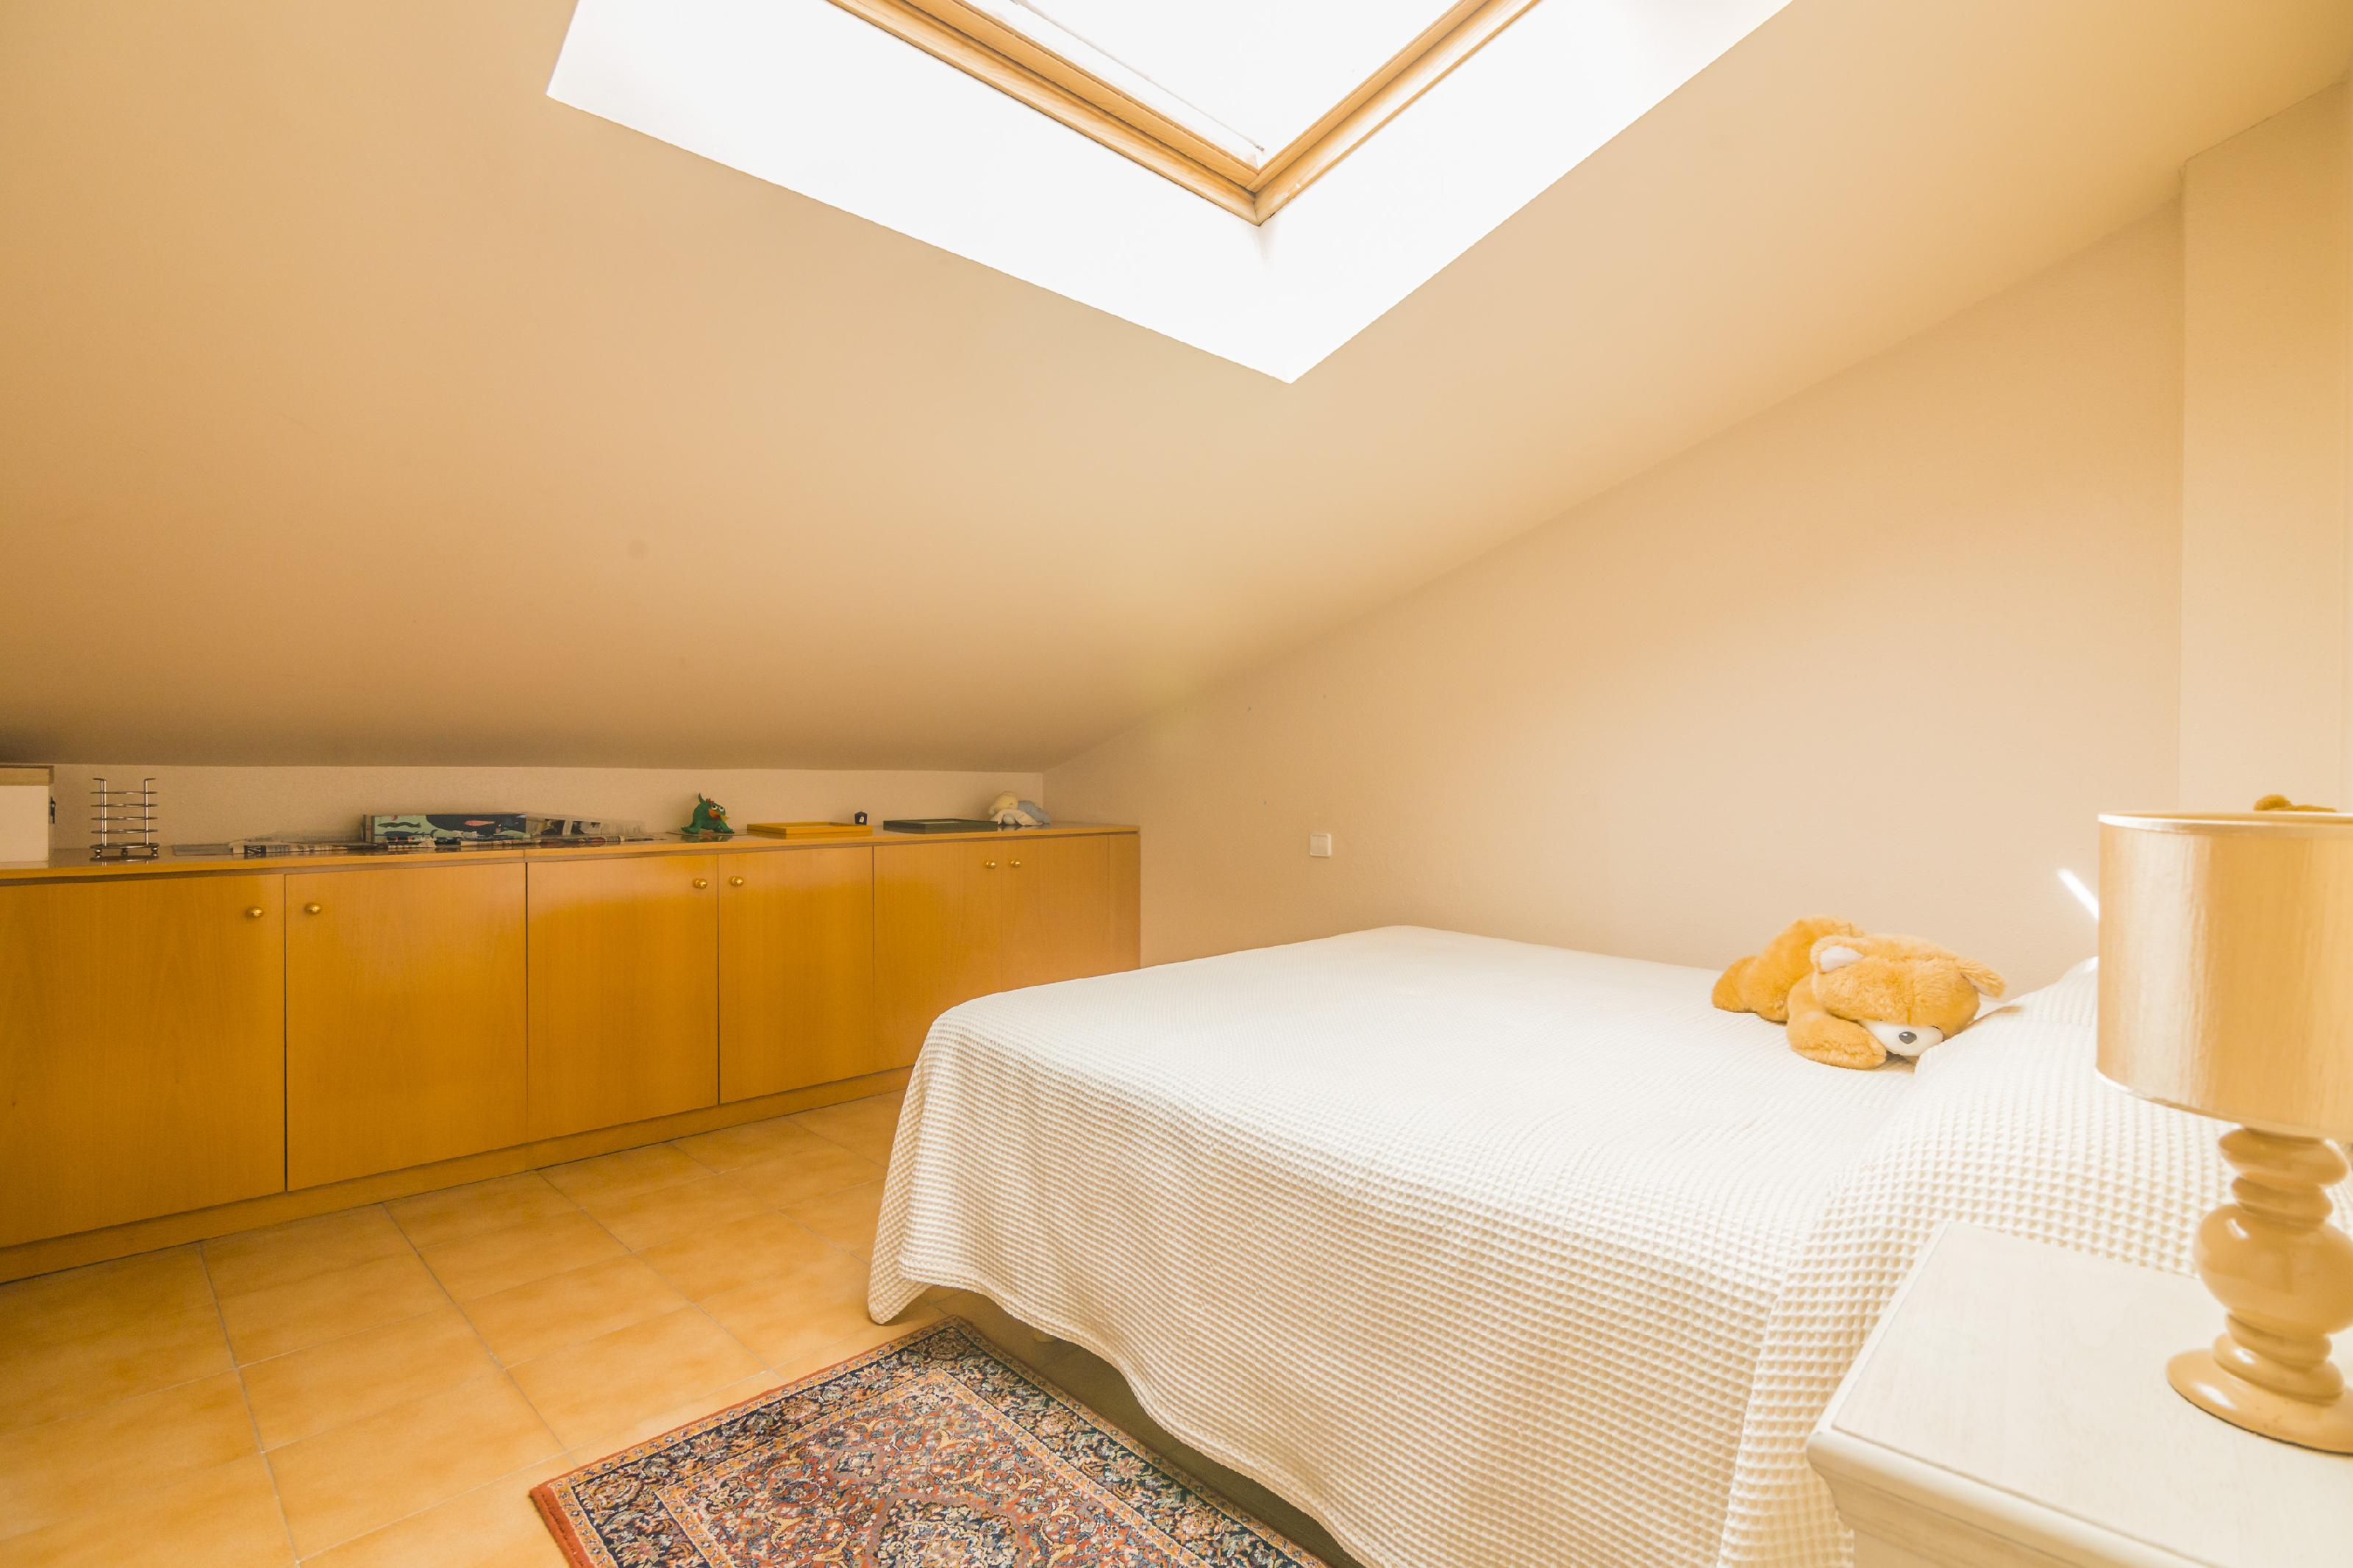 232637 Penthouse for sale in Sarrià-Sant Gervasi, Sant Gervasi-Galvany 8